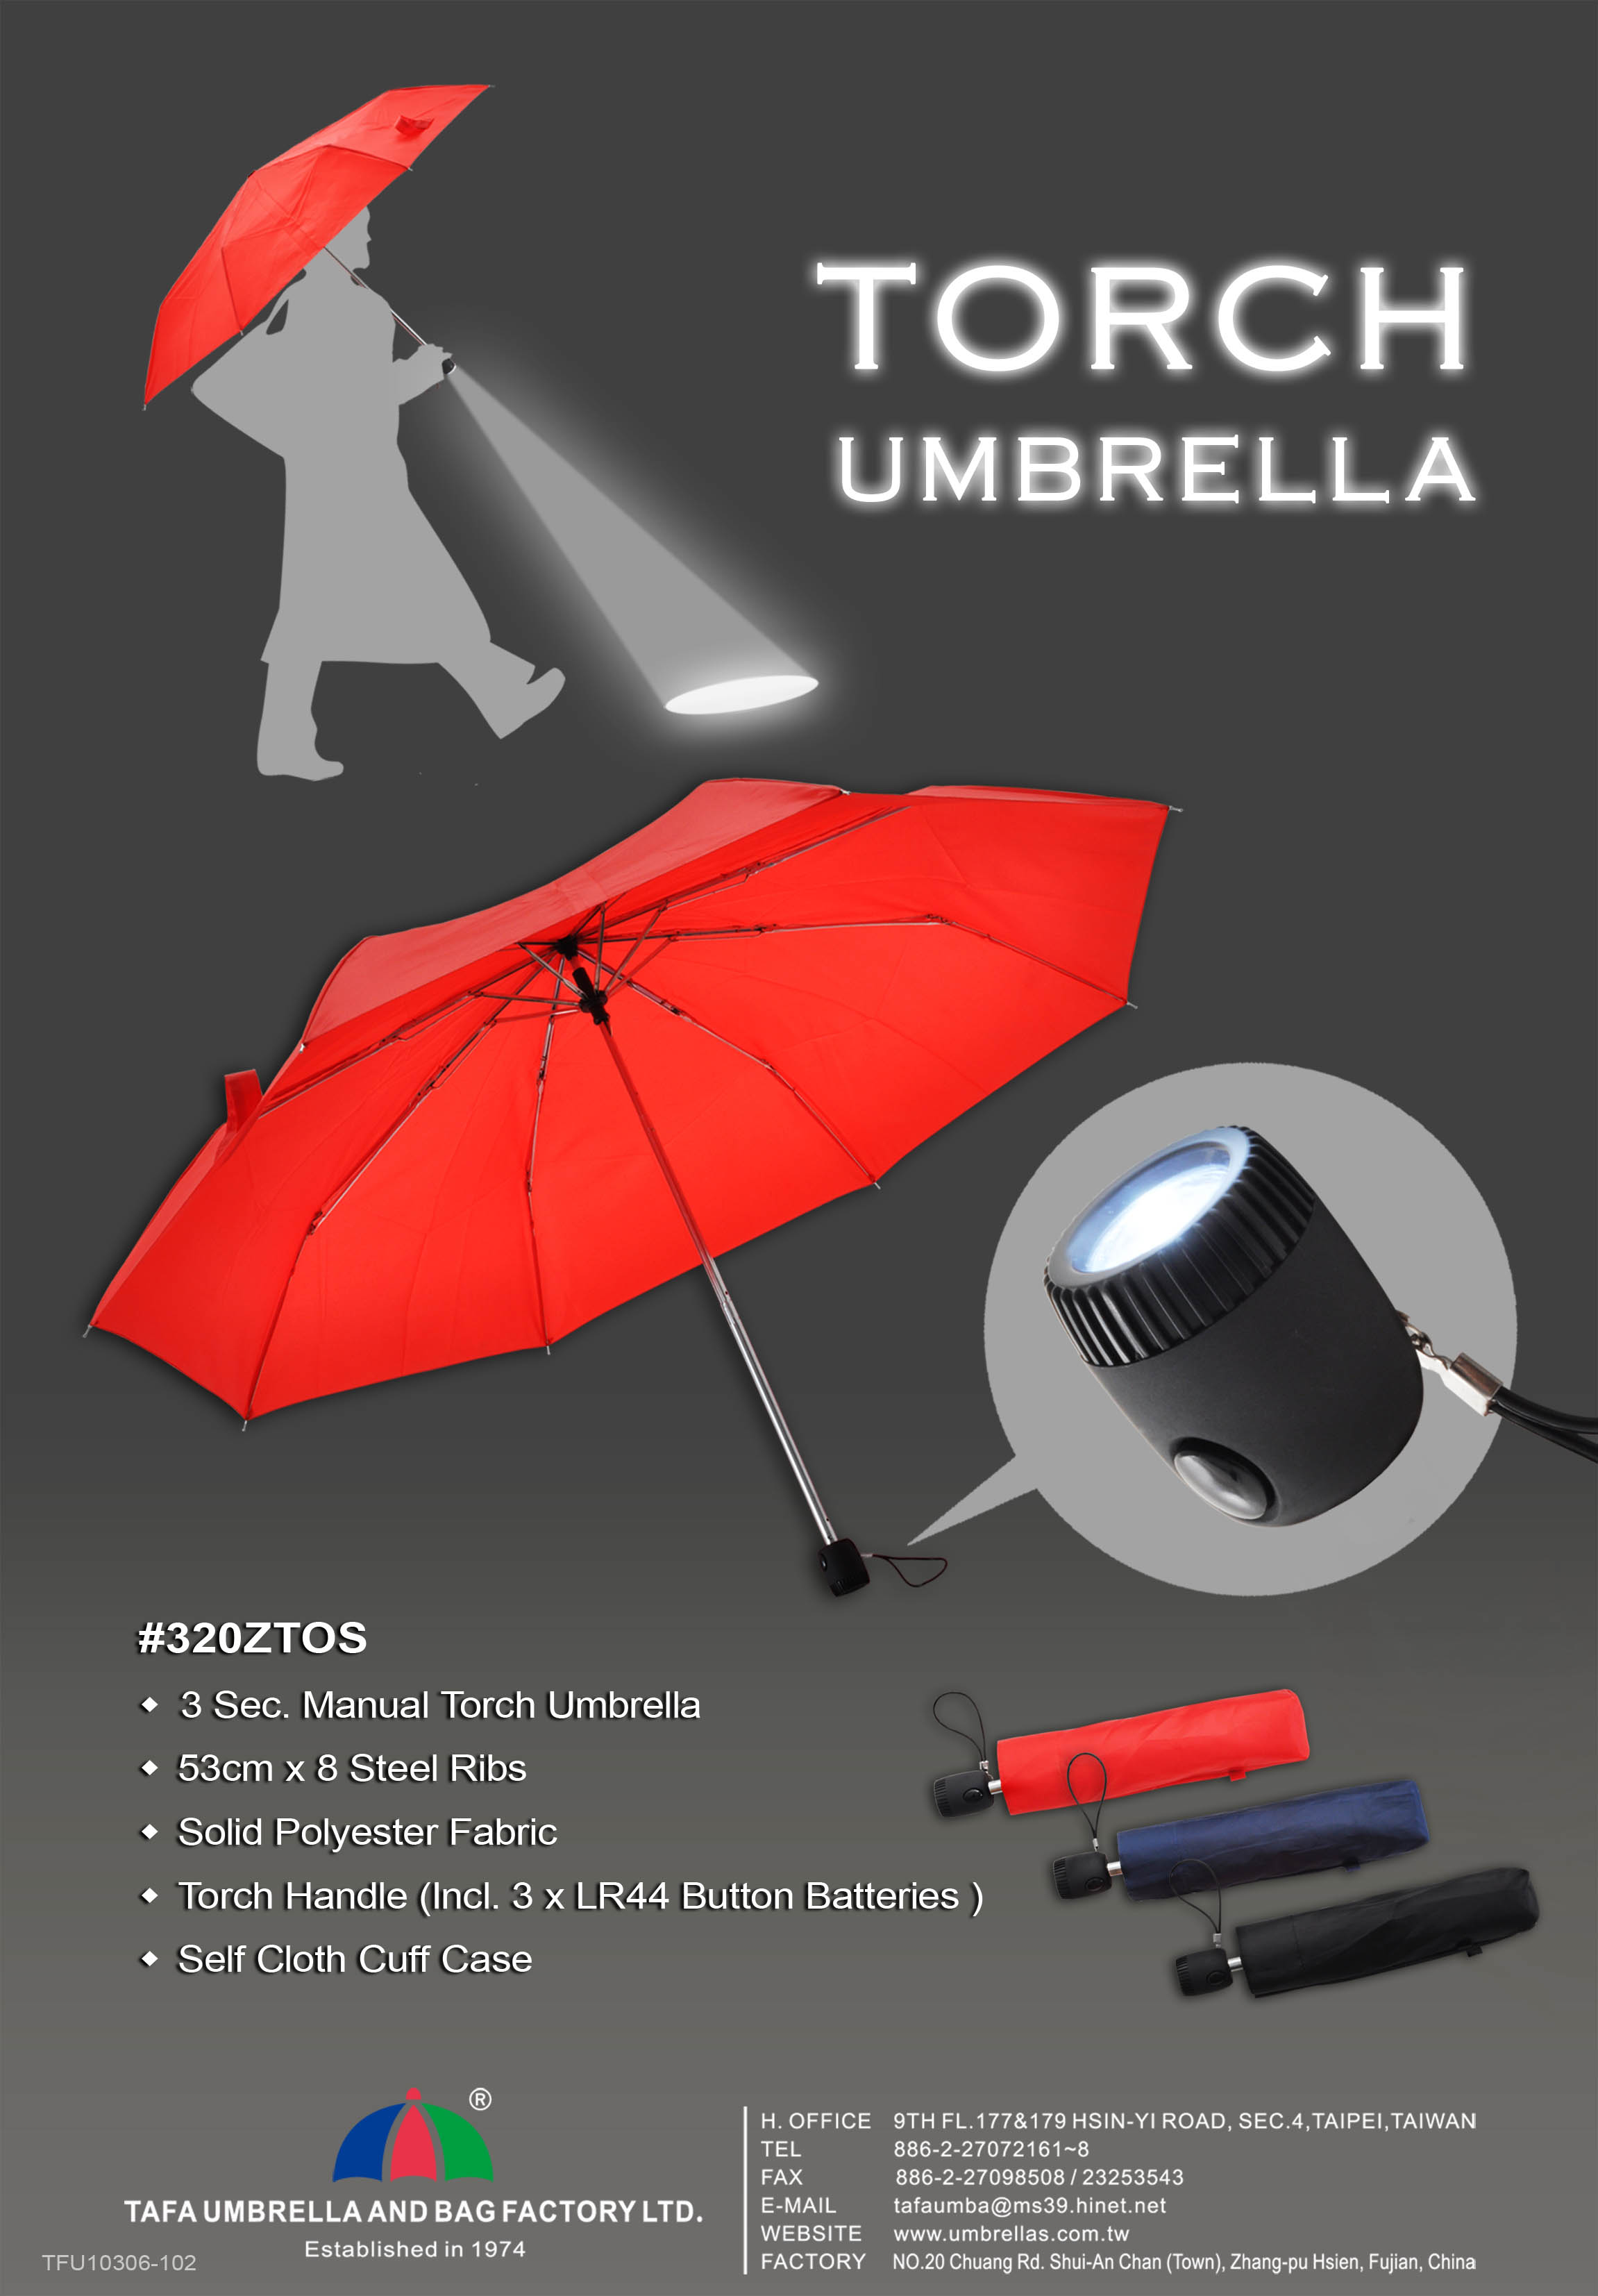 Torch Umbrella